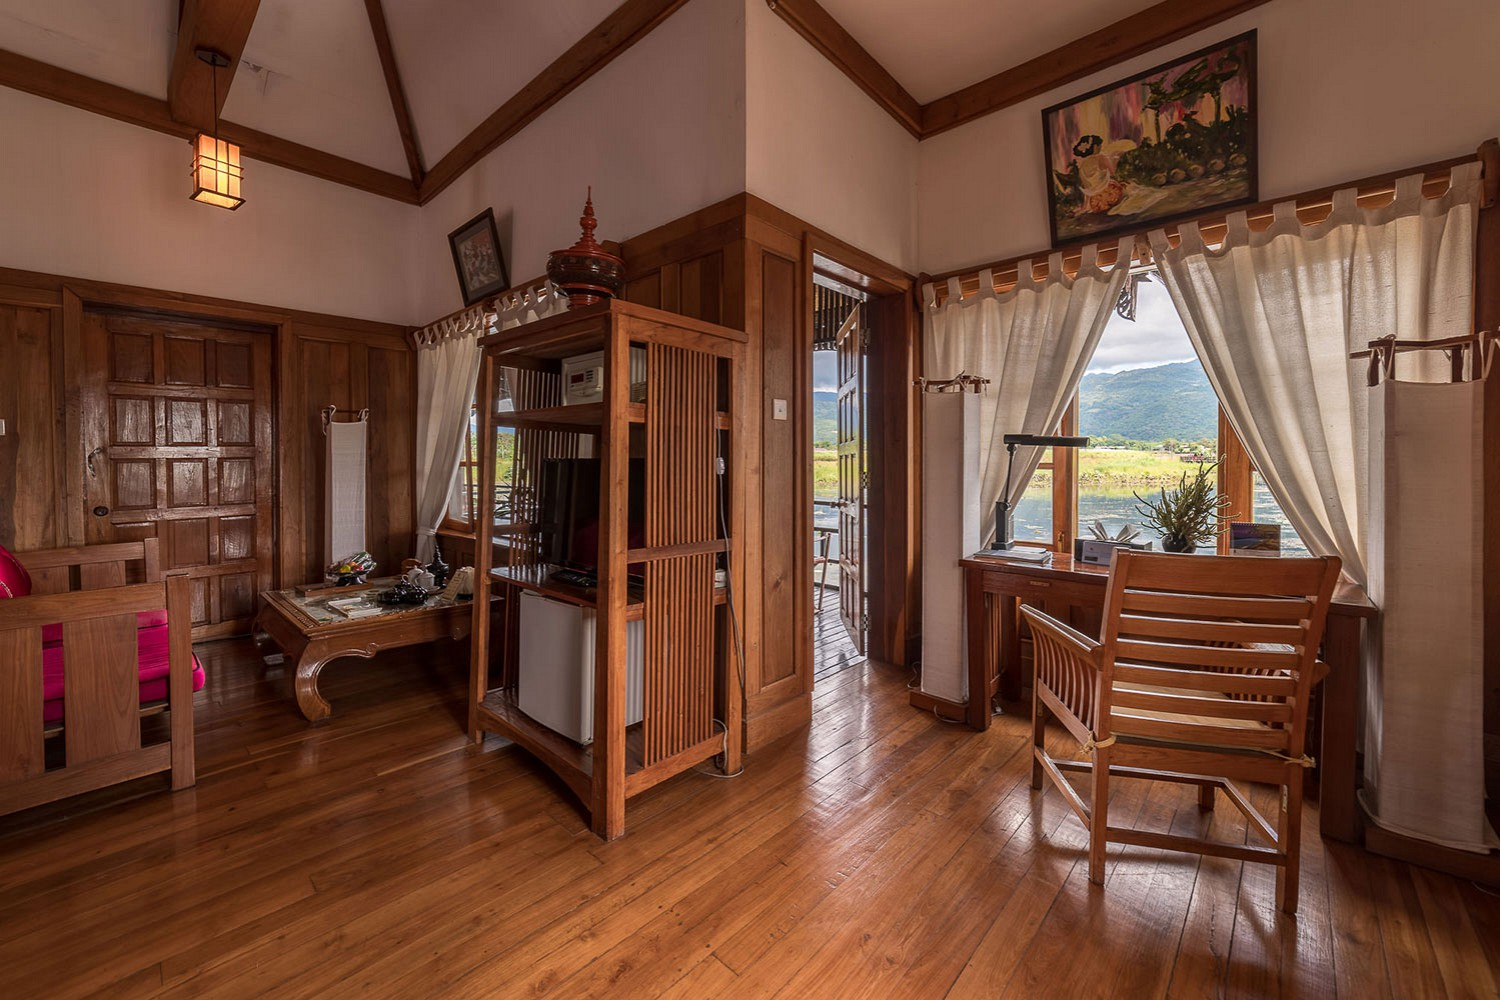 Inle lake resort Myanmar